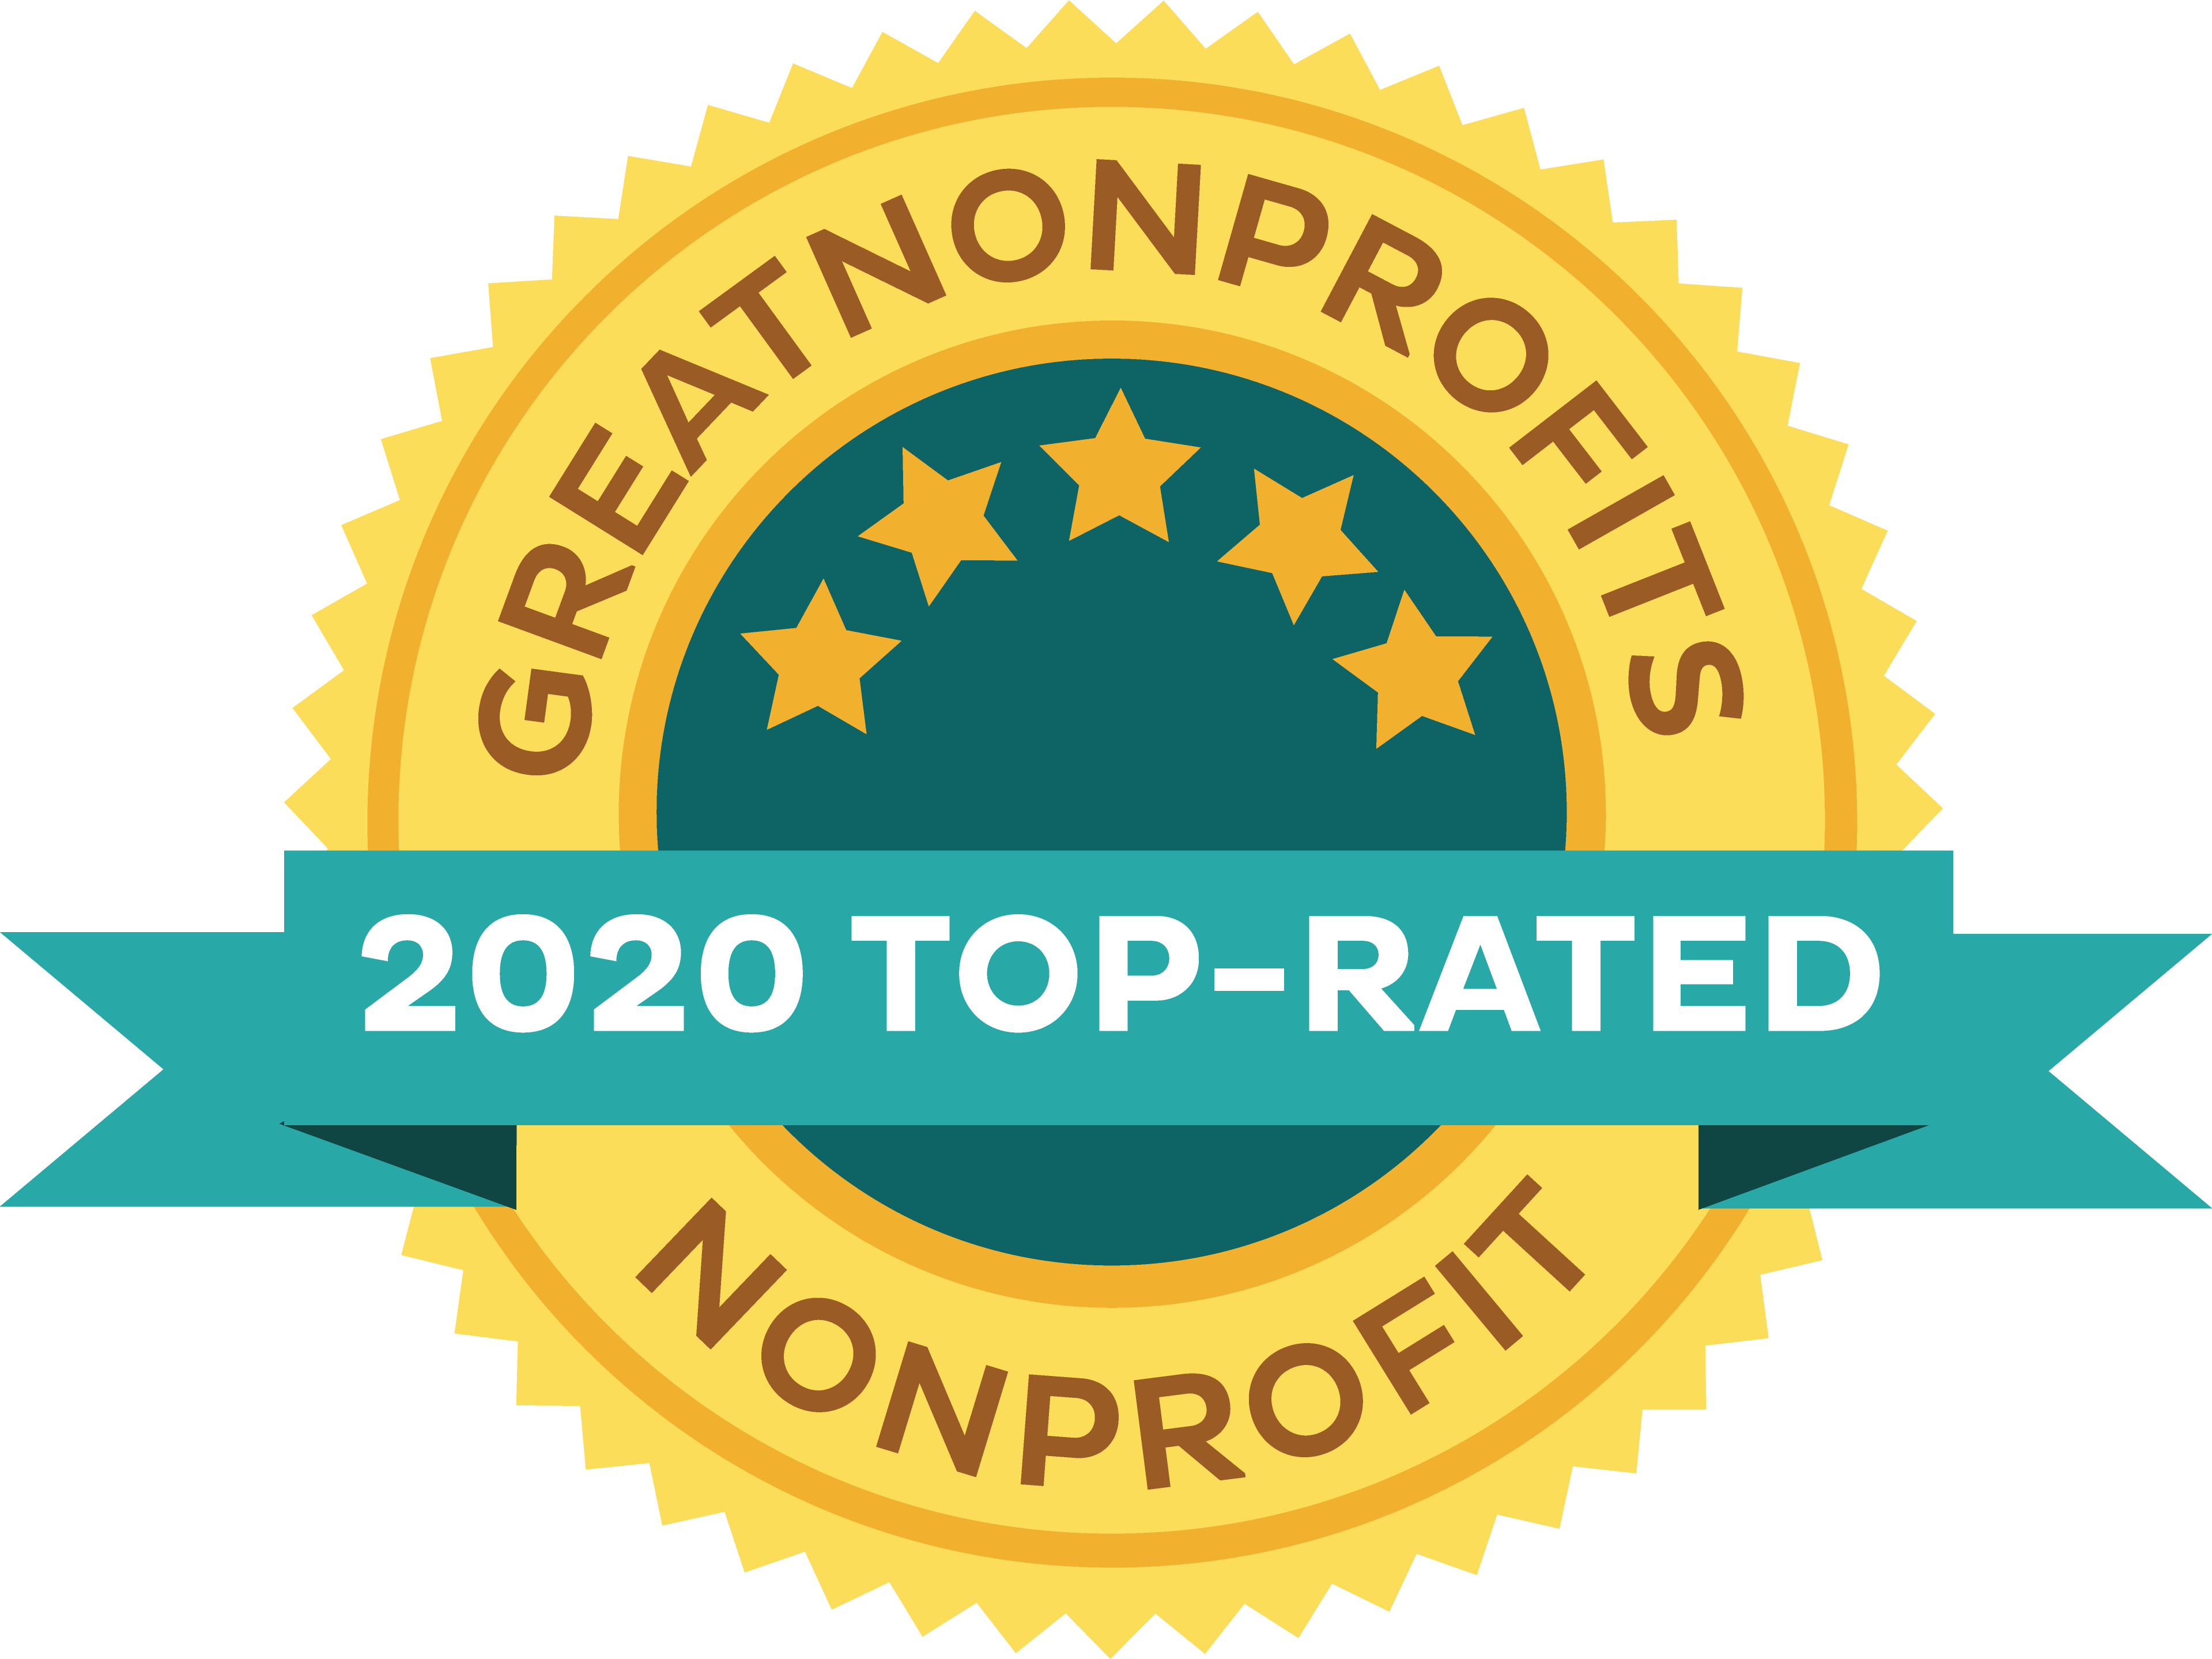 GreatNonprofits 2019 Top-Rated Nonprofit